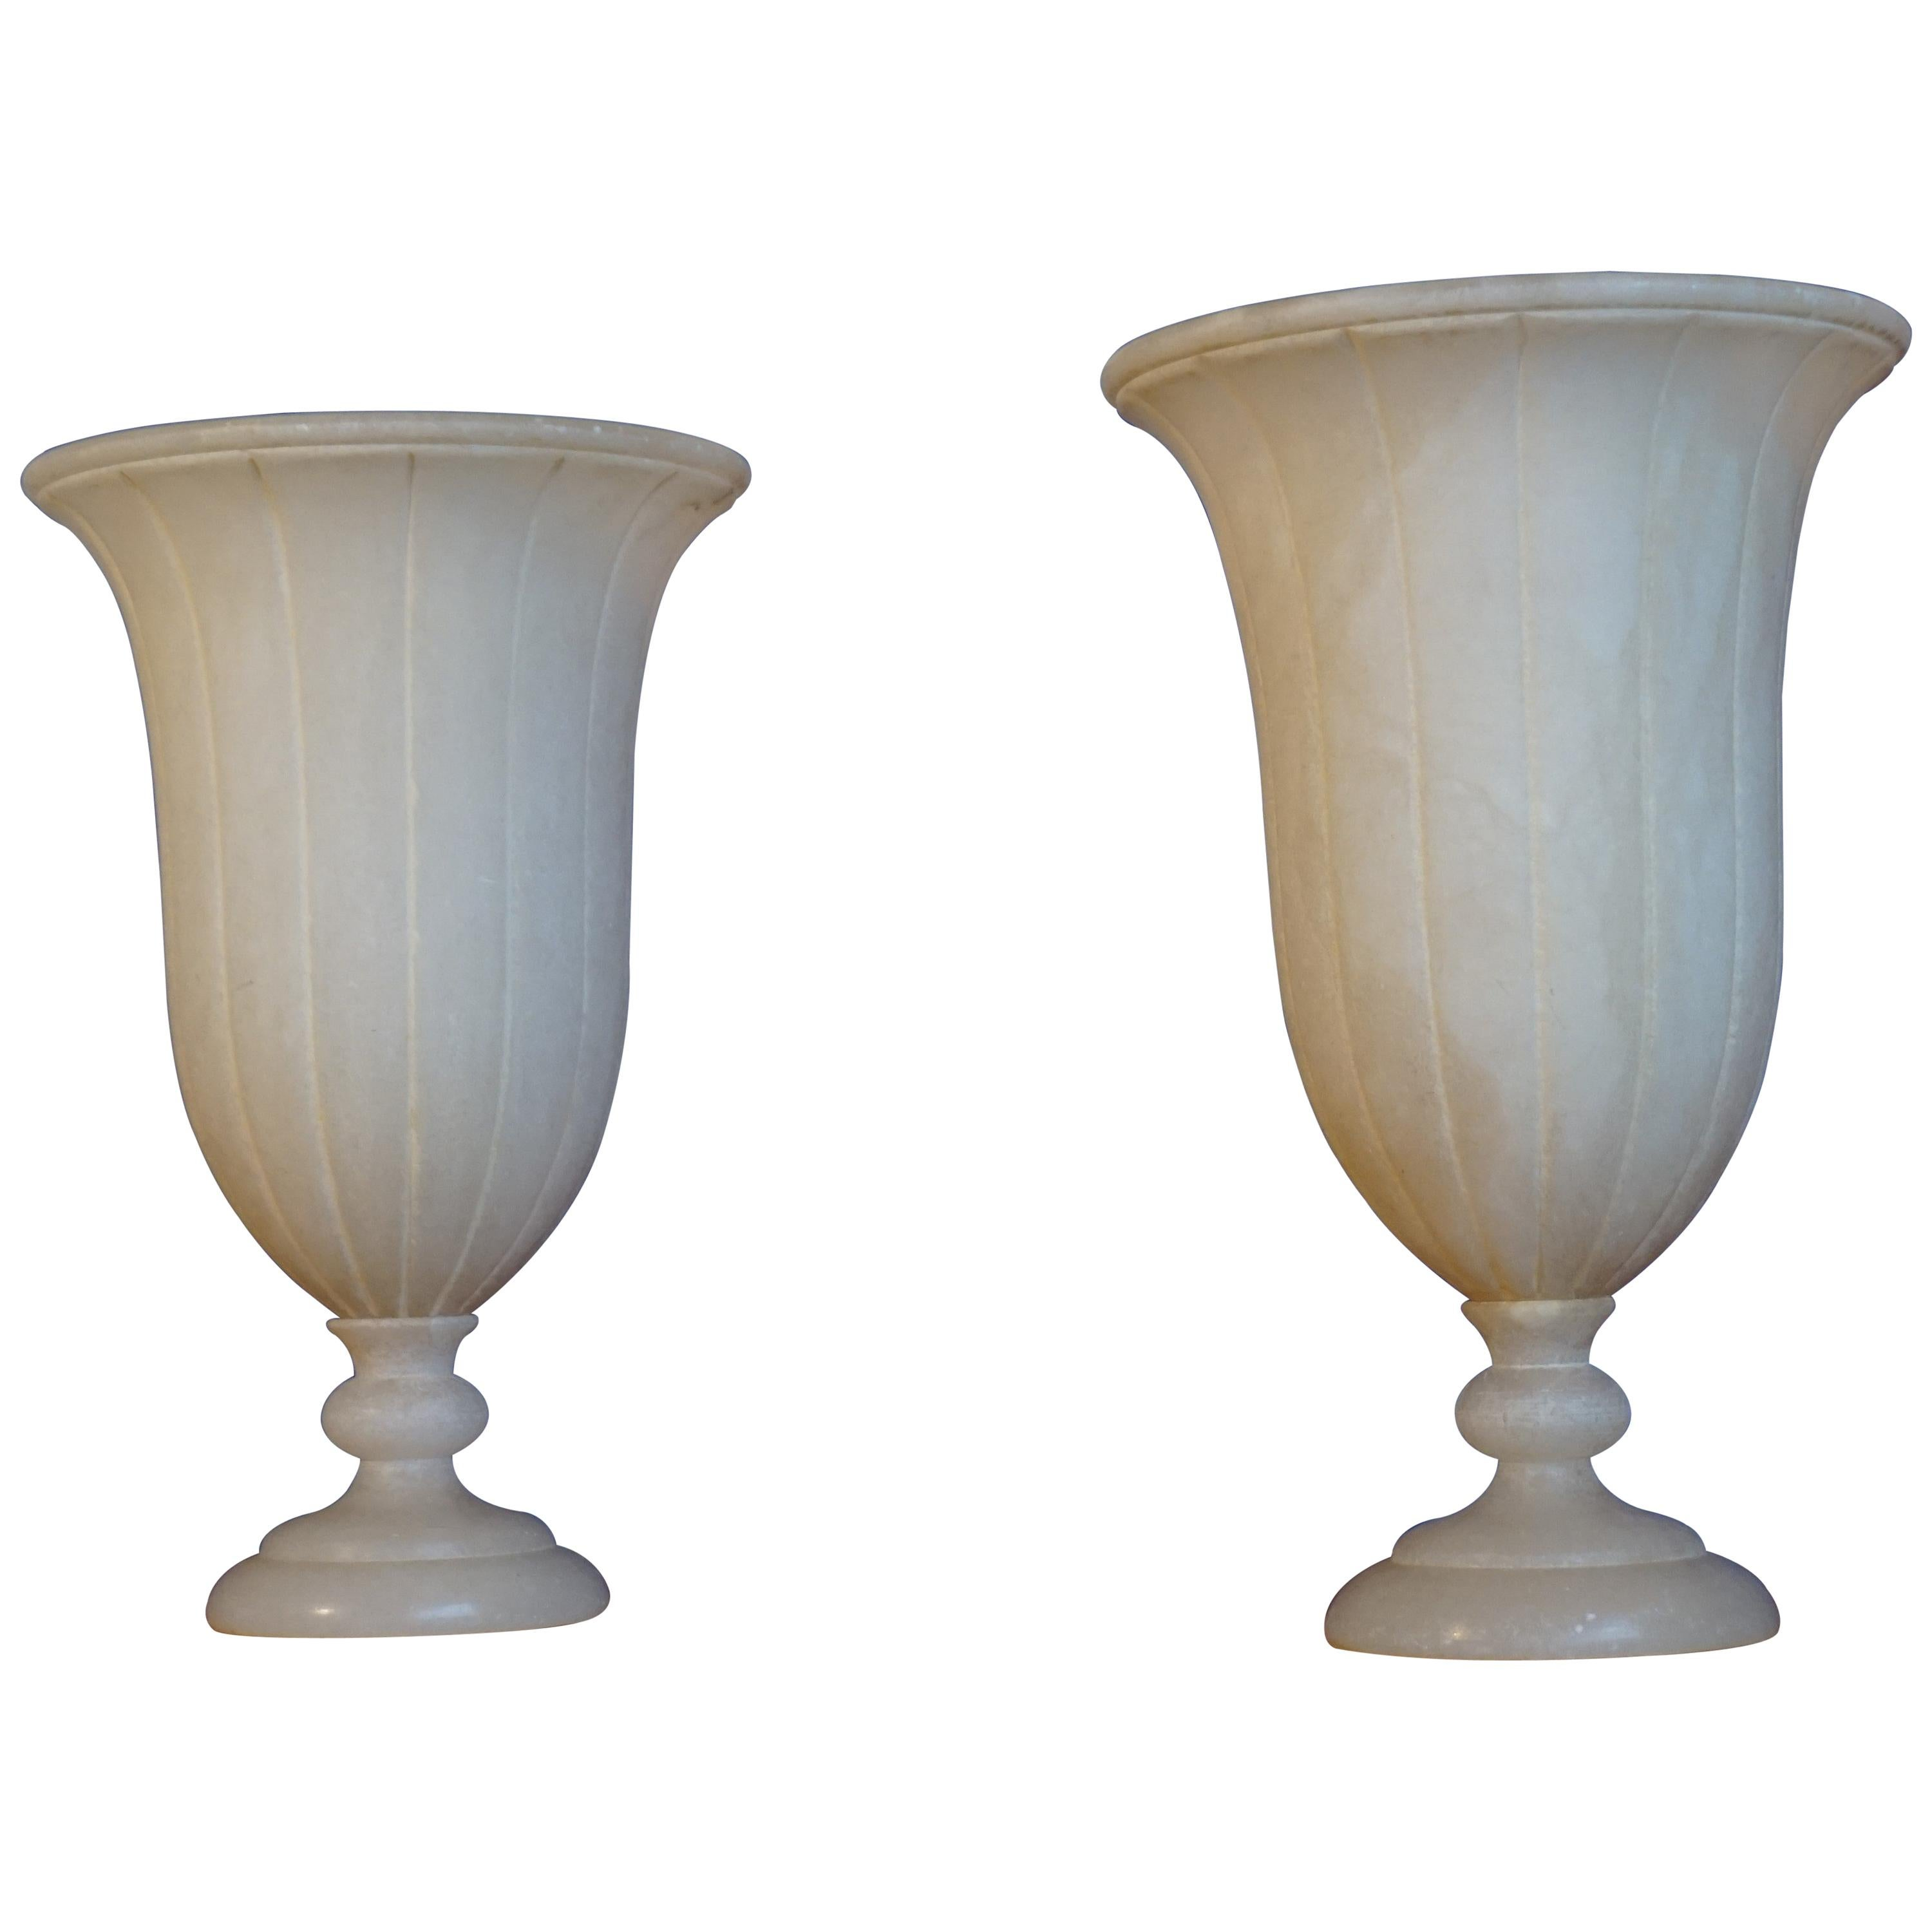 Beautiful Pair of Hand Carved Classical Roman Design Alabaster Table Lamps 1970s